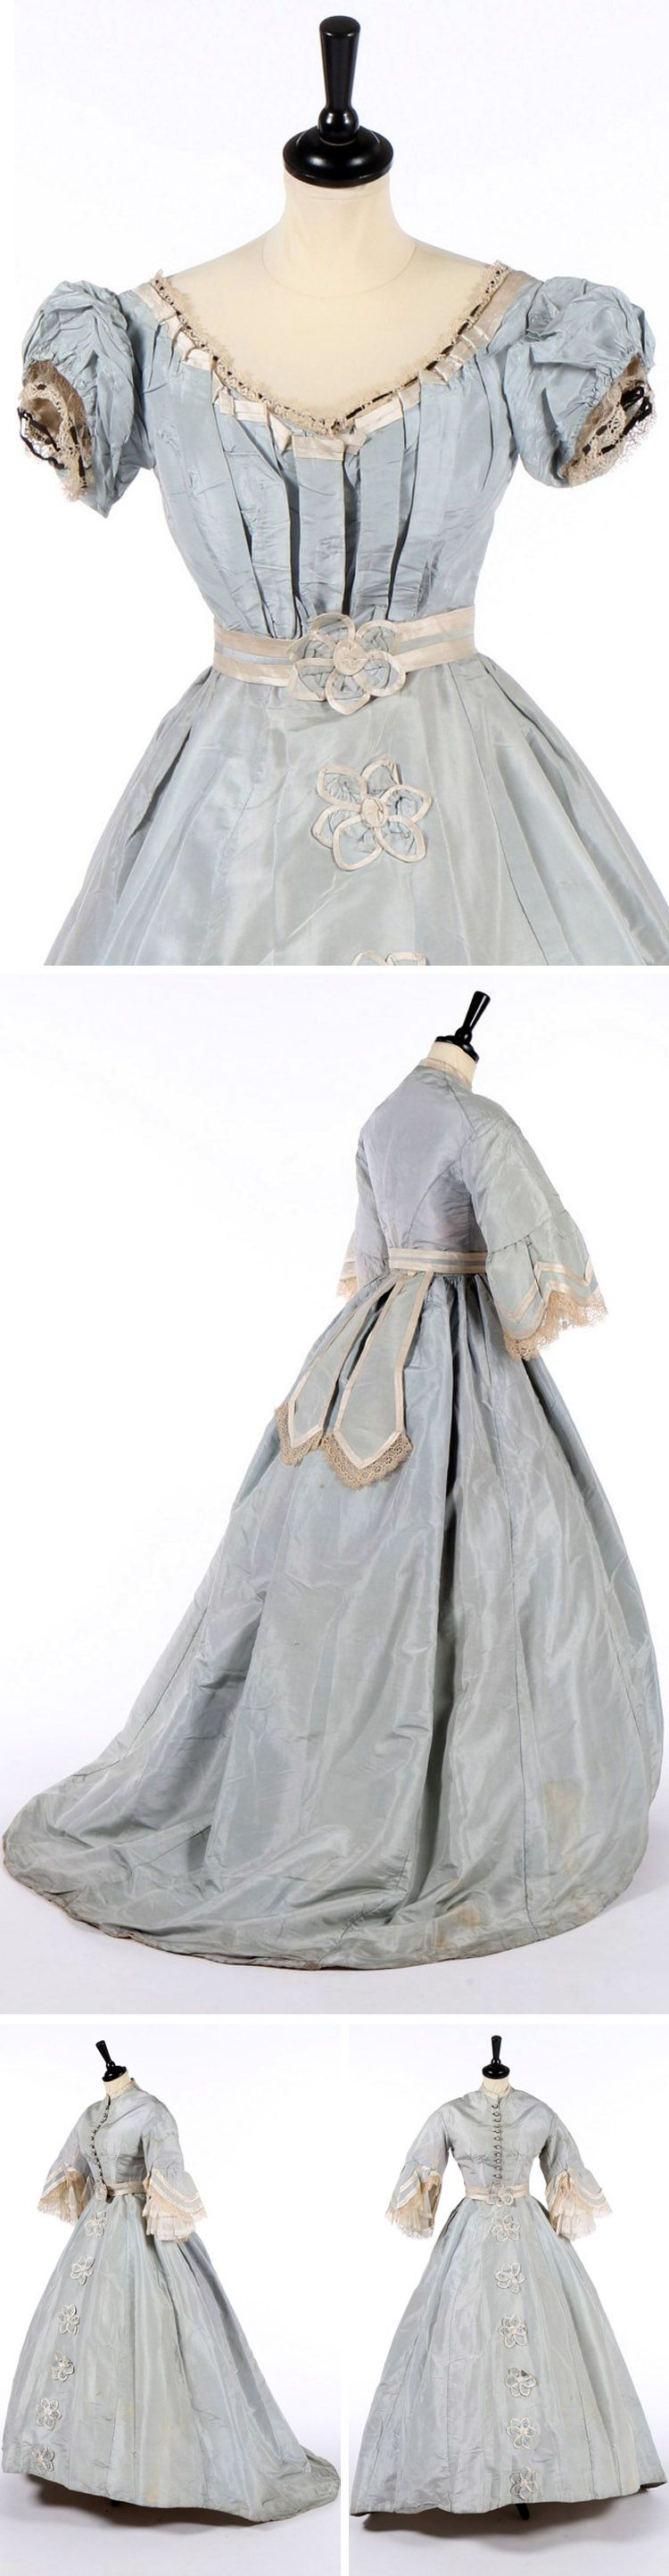 Dress With Day Evening Bodices Ca 1868 Pale Blue Silk Evening Bodice Top Photo With Puffed Sleeves Trimm Fashion Historical Dresses Victorian Fashion [ 2889 x 750 Pixel ]